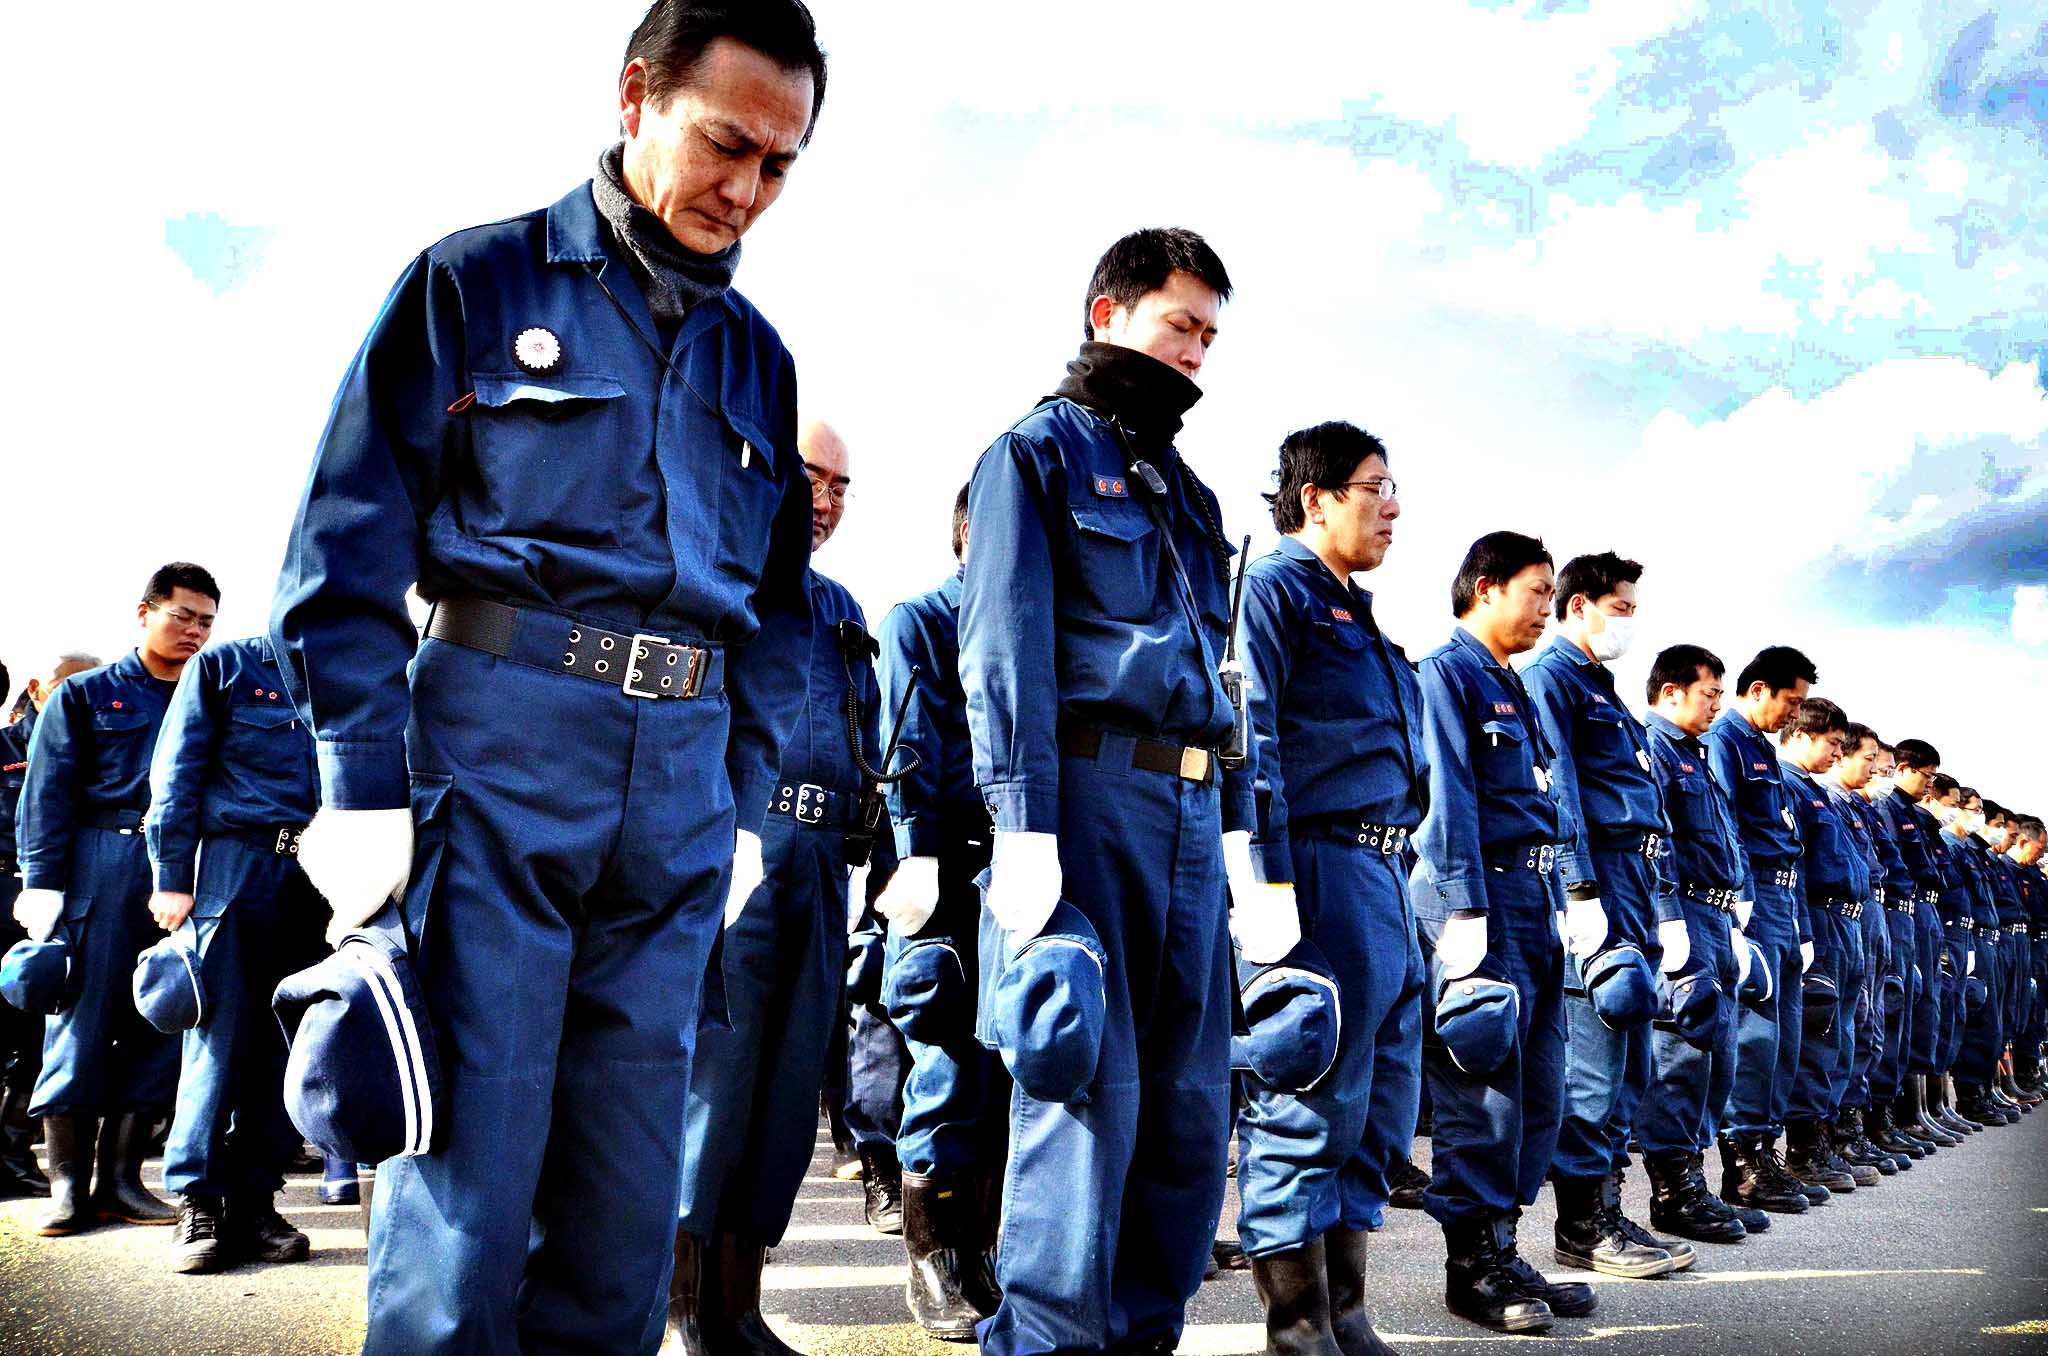 Police officers bow to offer prayers in silence for the victims in Namie, near the striken TEPCO Fukushima Dai-ichi nuclear plant in Fukushima prefecture on March 10, 2014, one day before the third anniversary of March 11 massive earthquake and tsunami.  The 9.0 magnitude earthquake in 2011 sent a huge wall of water into the coast of the Tohoku region, splintering whole communities, ruining swathes of prime farmland and killing nearly 19,000 people.